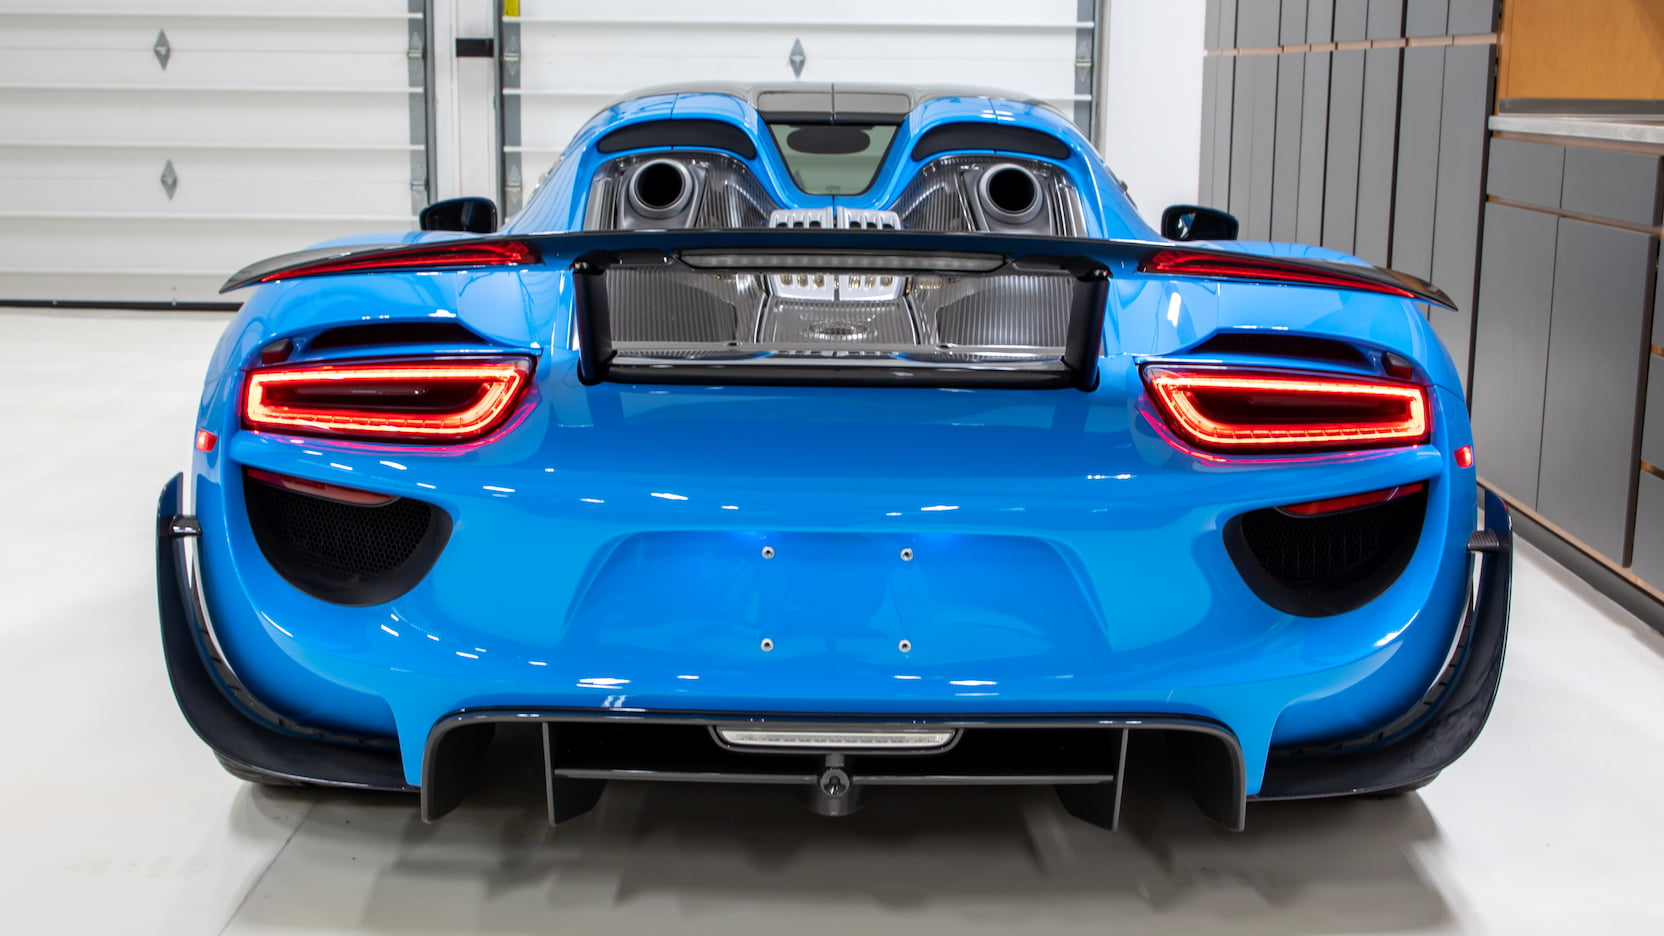 Porsche-918-Spyder-Riviera-Blue-auction-20